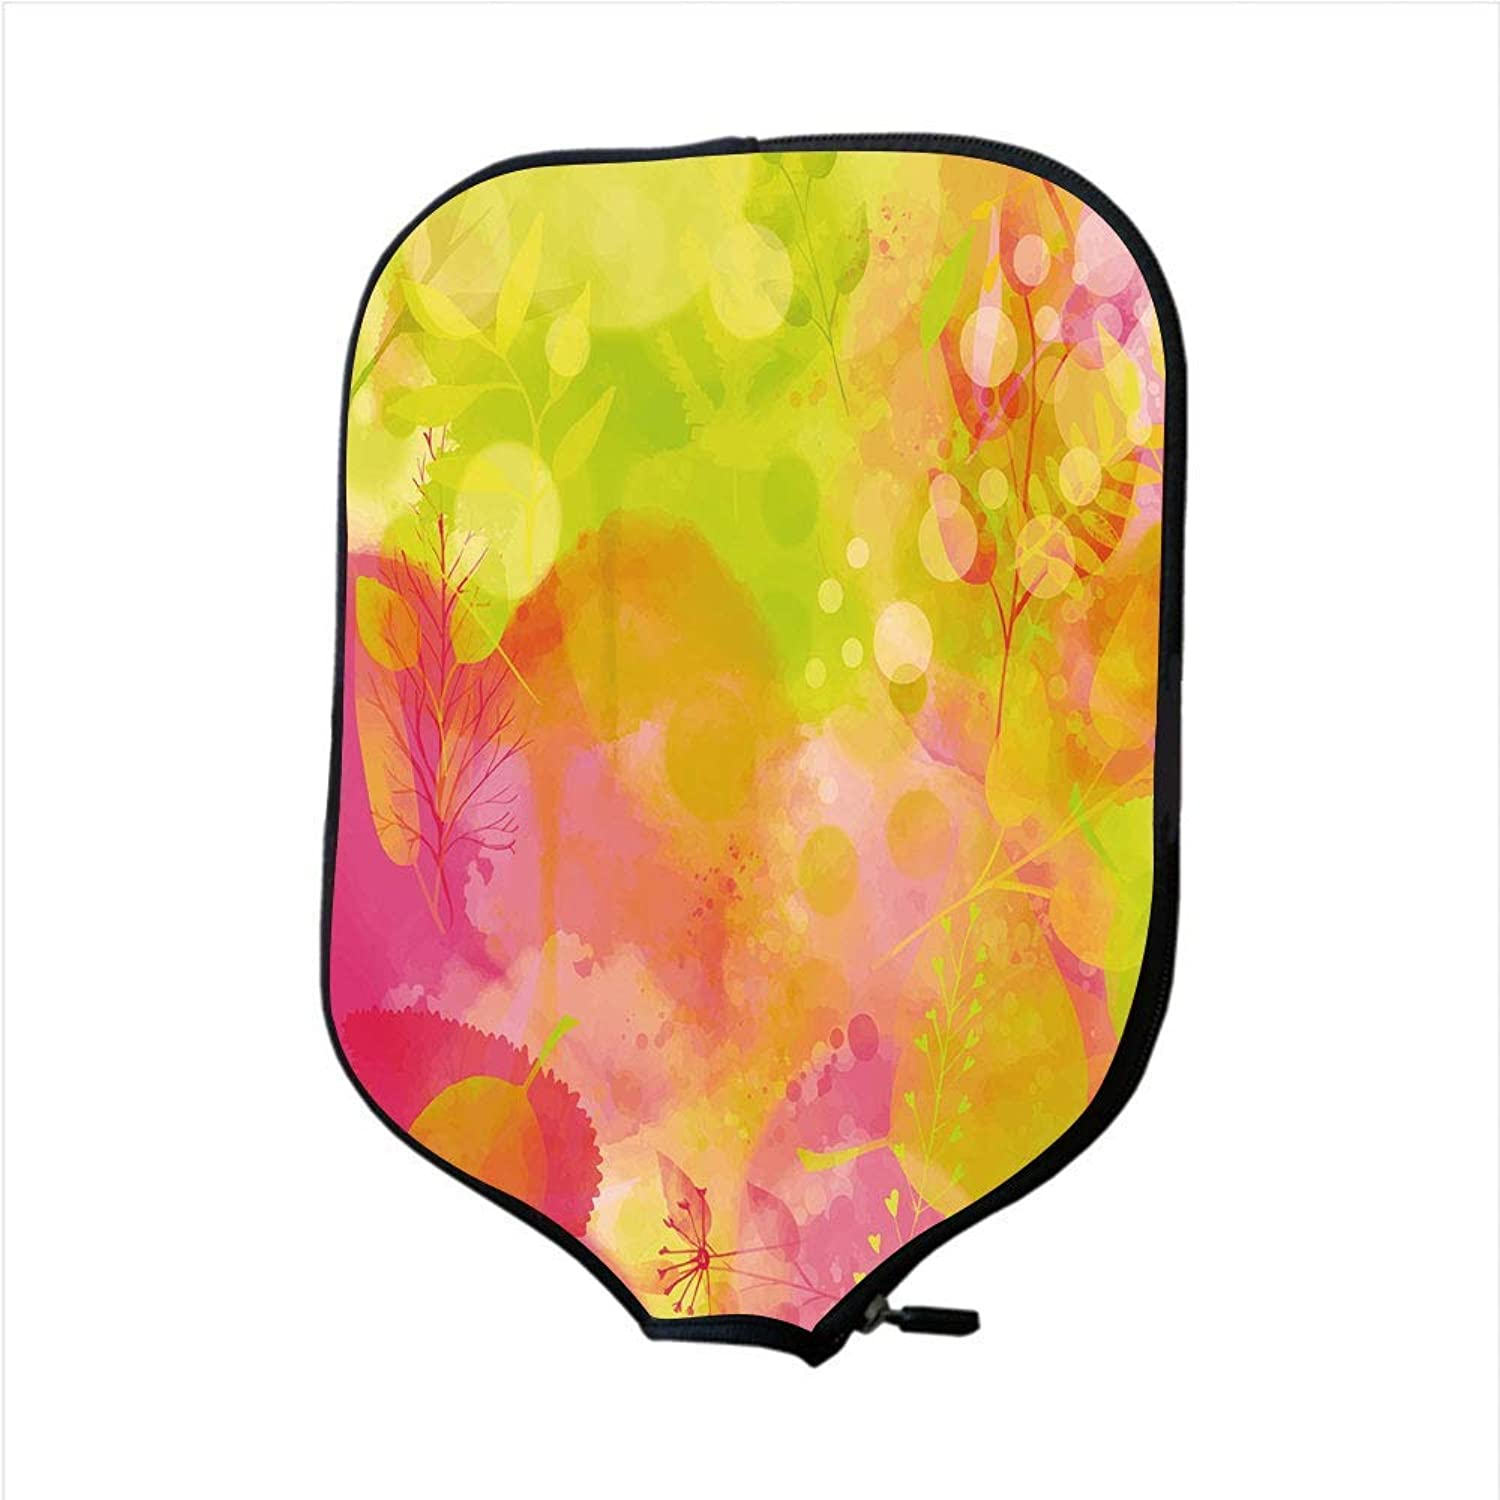 Fine Neoprene Pickleball Paddle Racket Cover Case,Pastel,Nature Inspired Watercolor Paintbrush Spring Yard Psychedelic Artwork Decorative,Pink Apple Green Marigold,Fit for Most Rackets